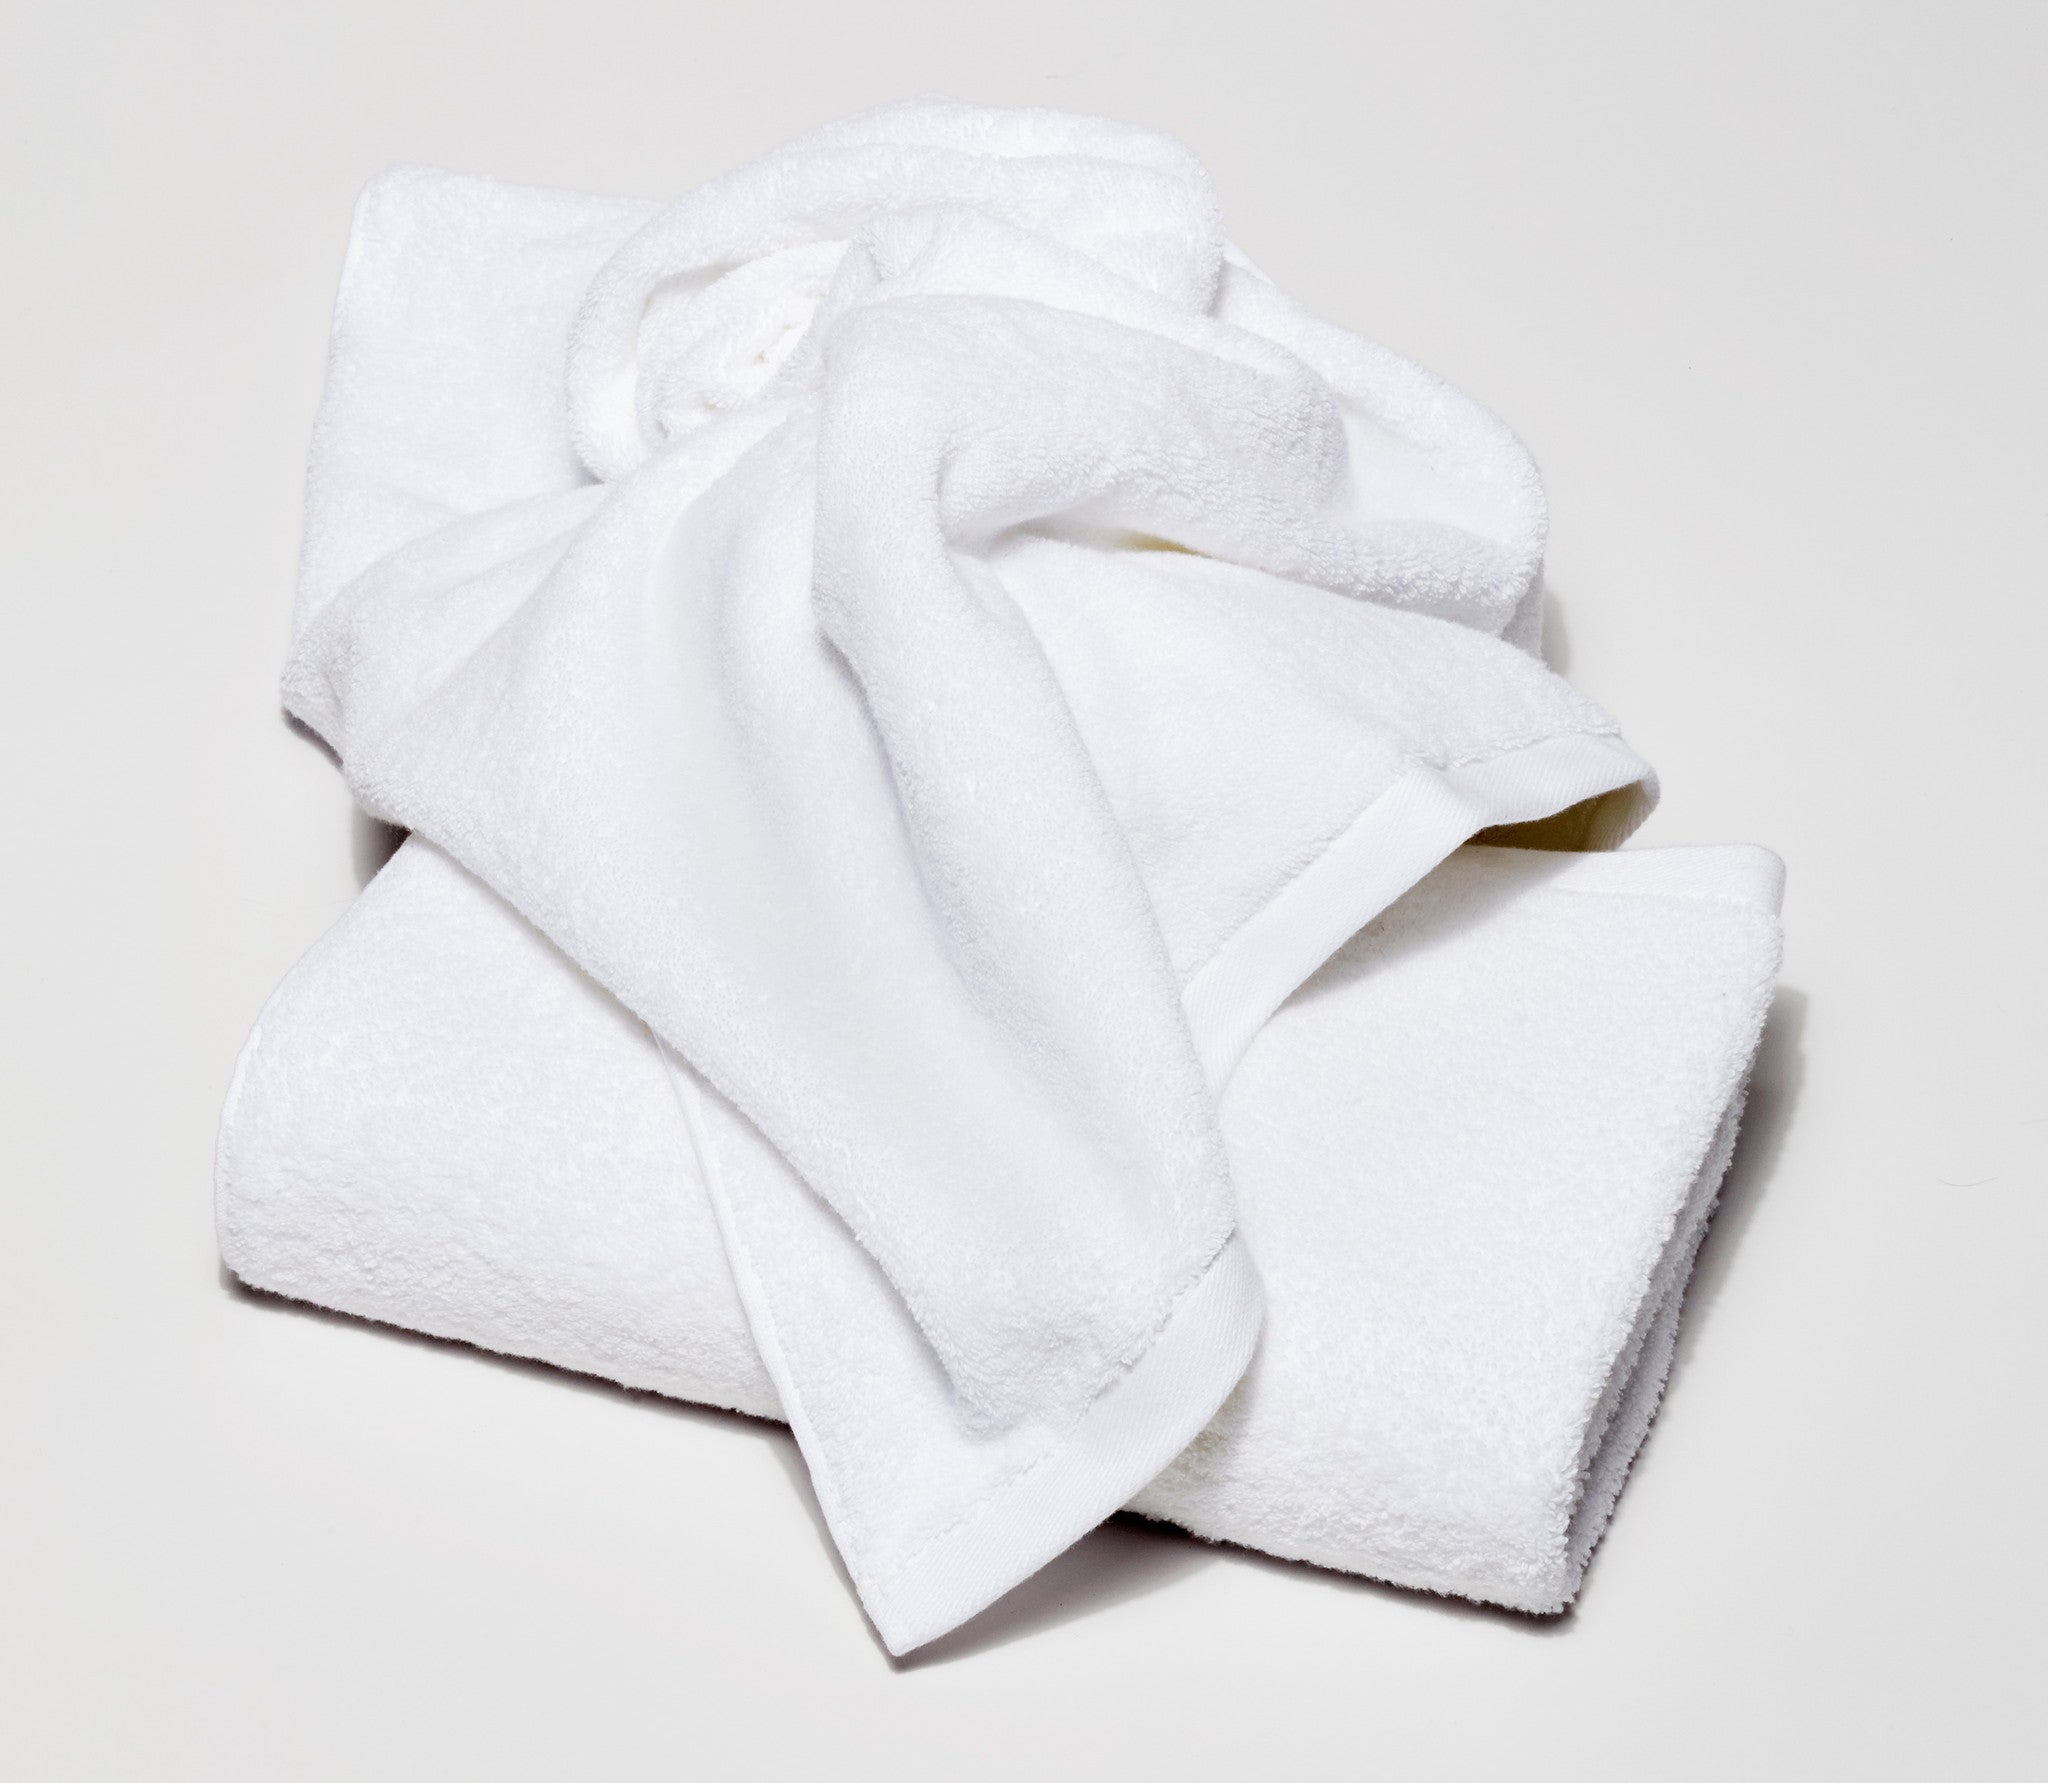 Bath Towels: Luxury Cotton Bathroom Towels | Snowe